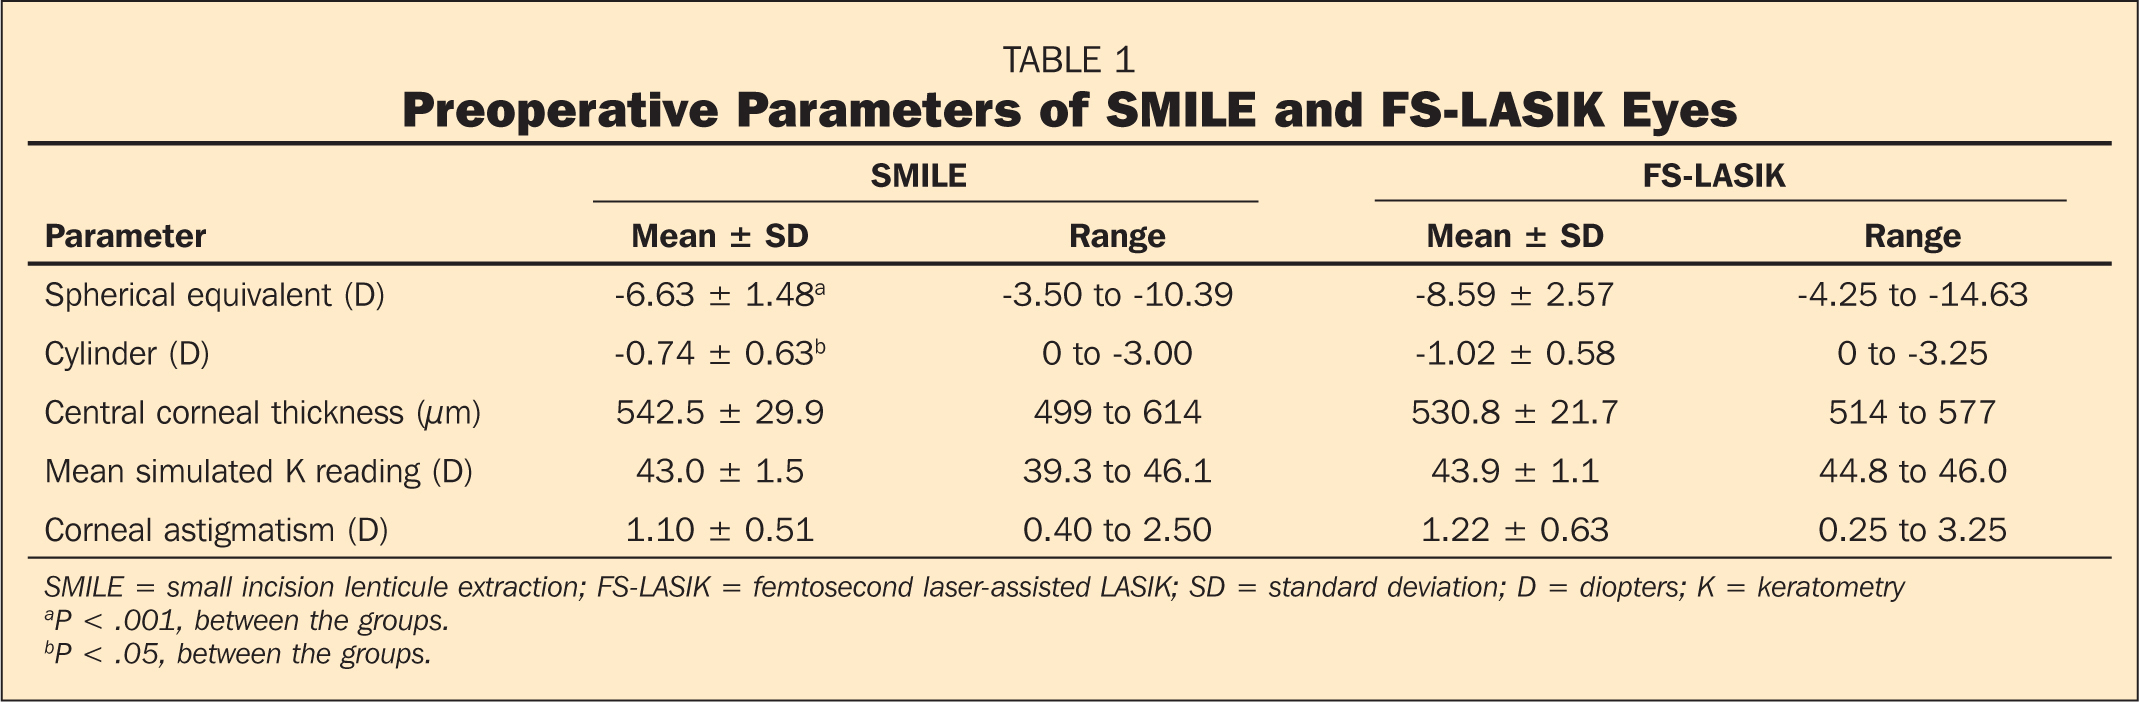 Preoperative Parameters of SMILE and FS-LASIK Eyes